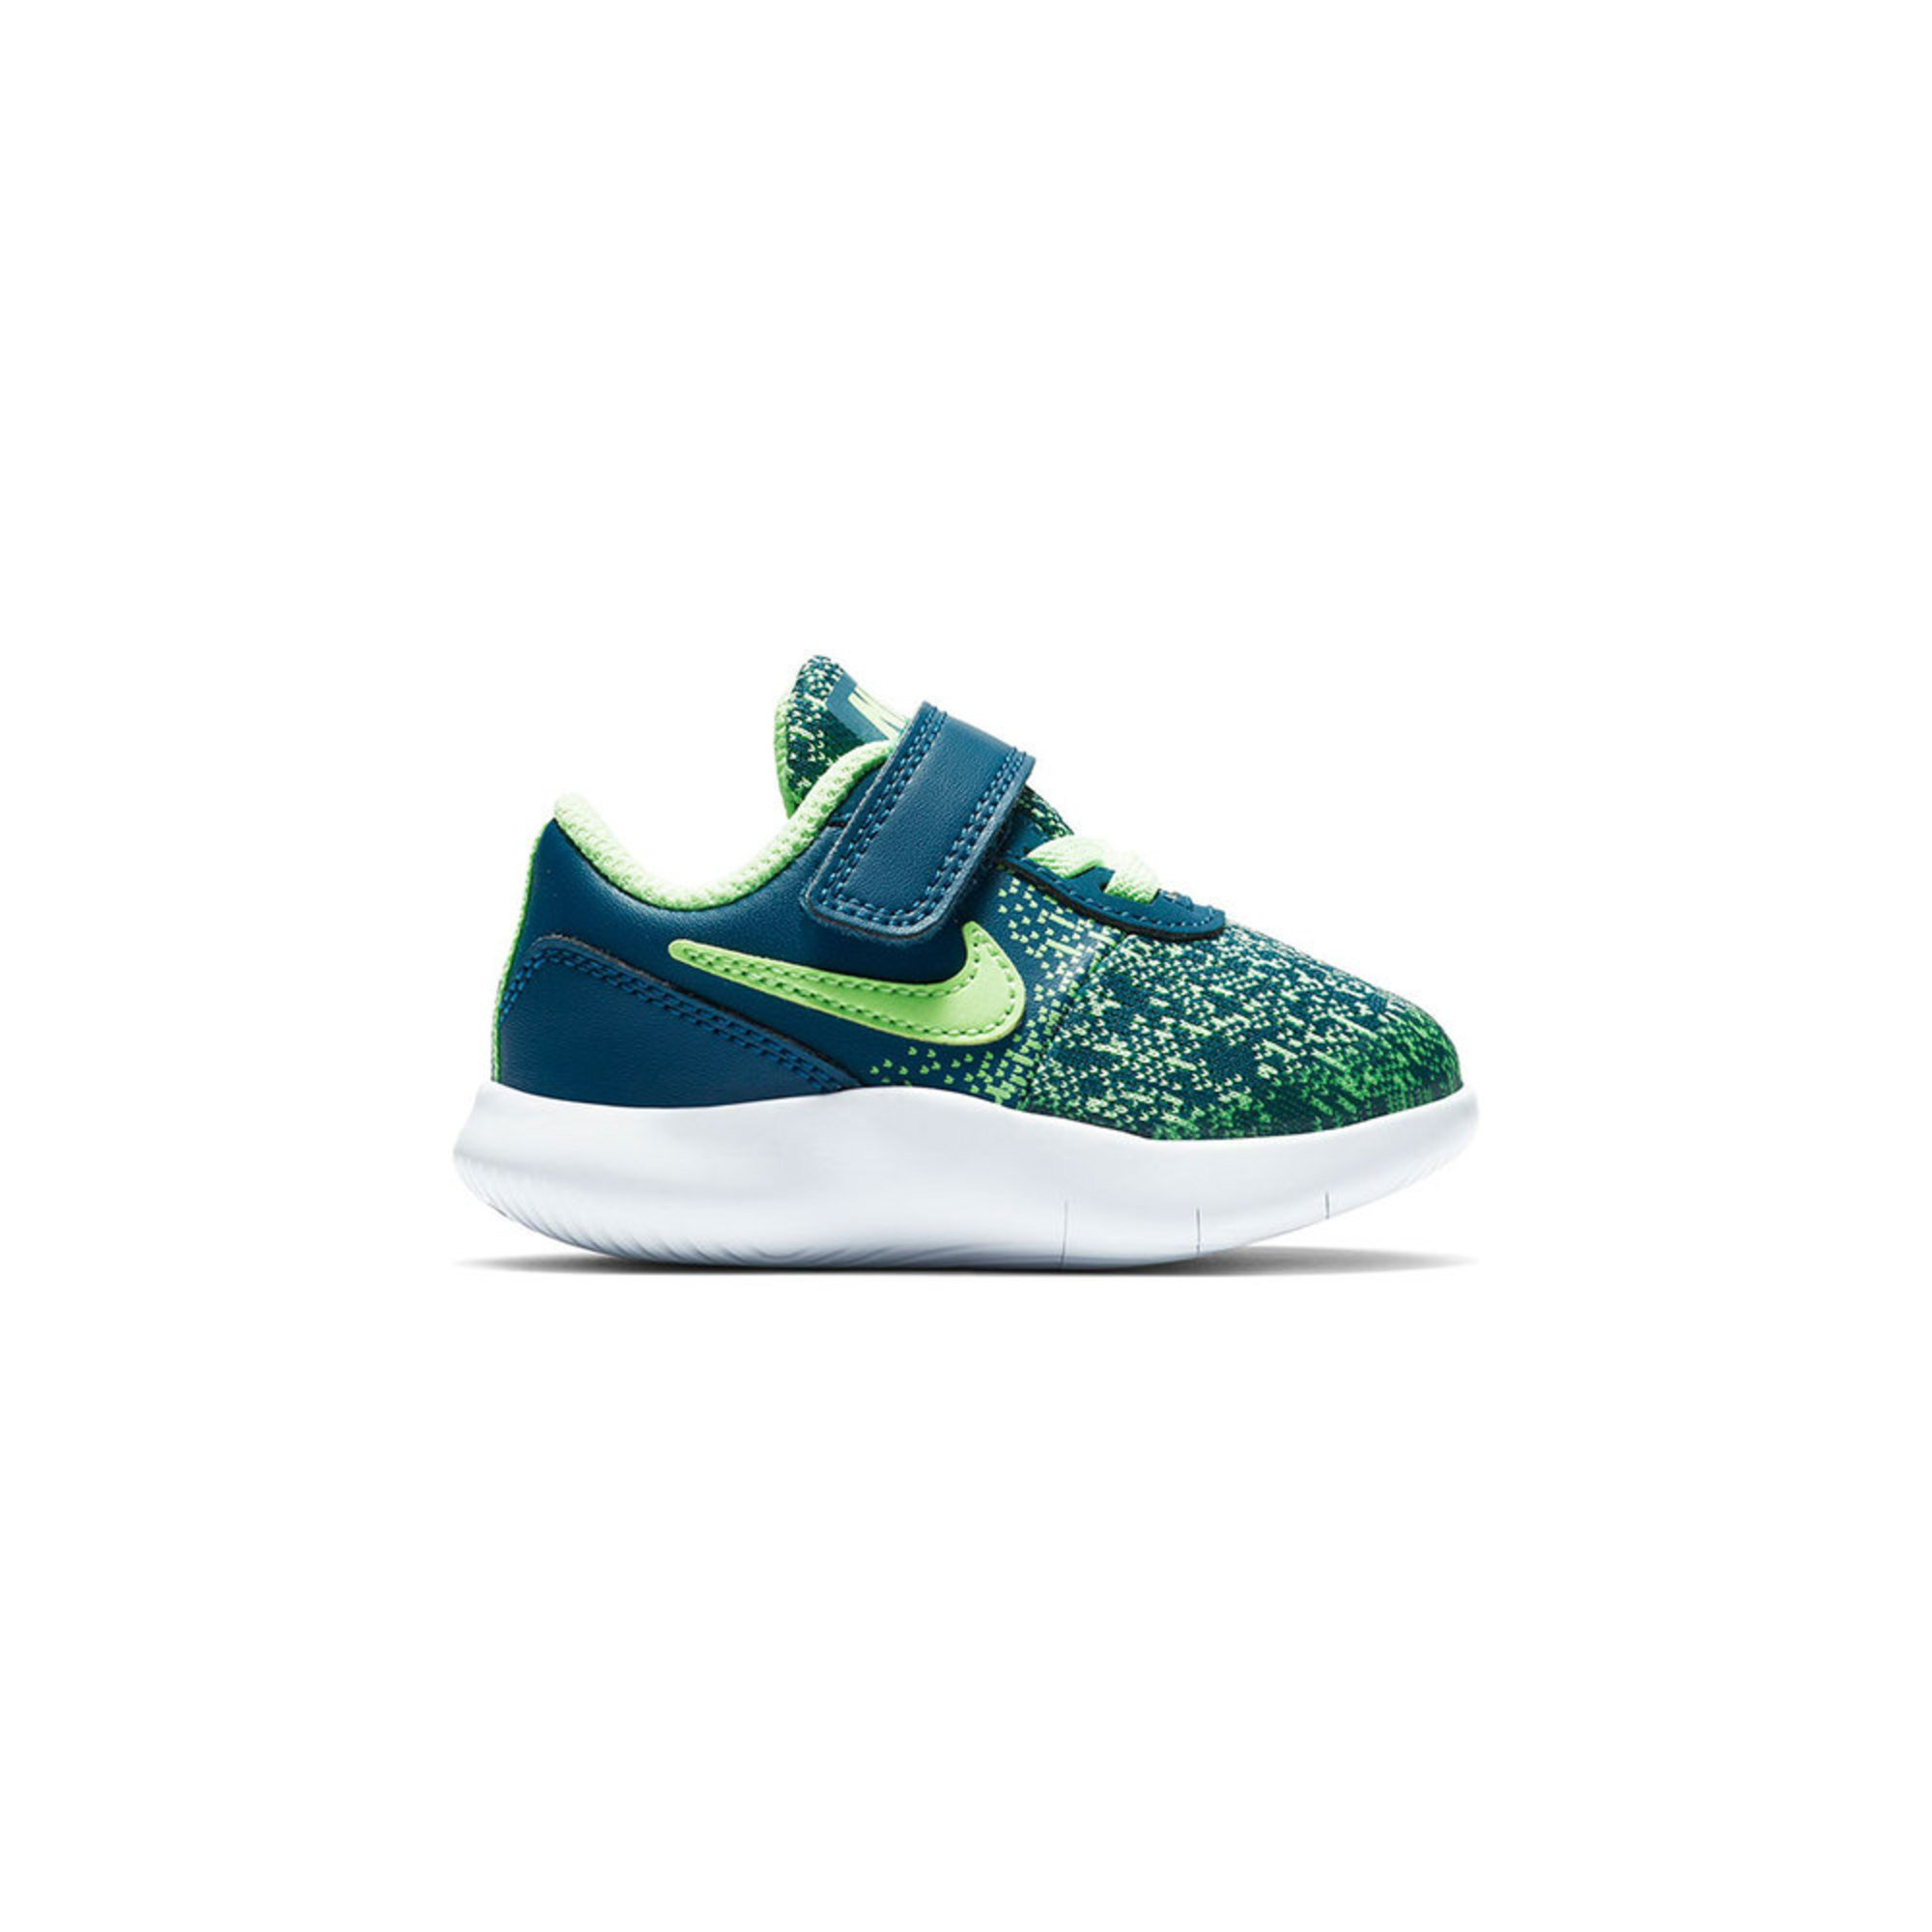 2d7413f4cceb3 Nike. Nike Boys Flex Contact Running Shoe (Infant Toddler)